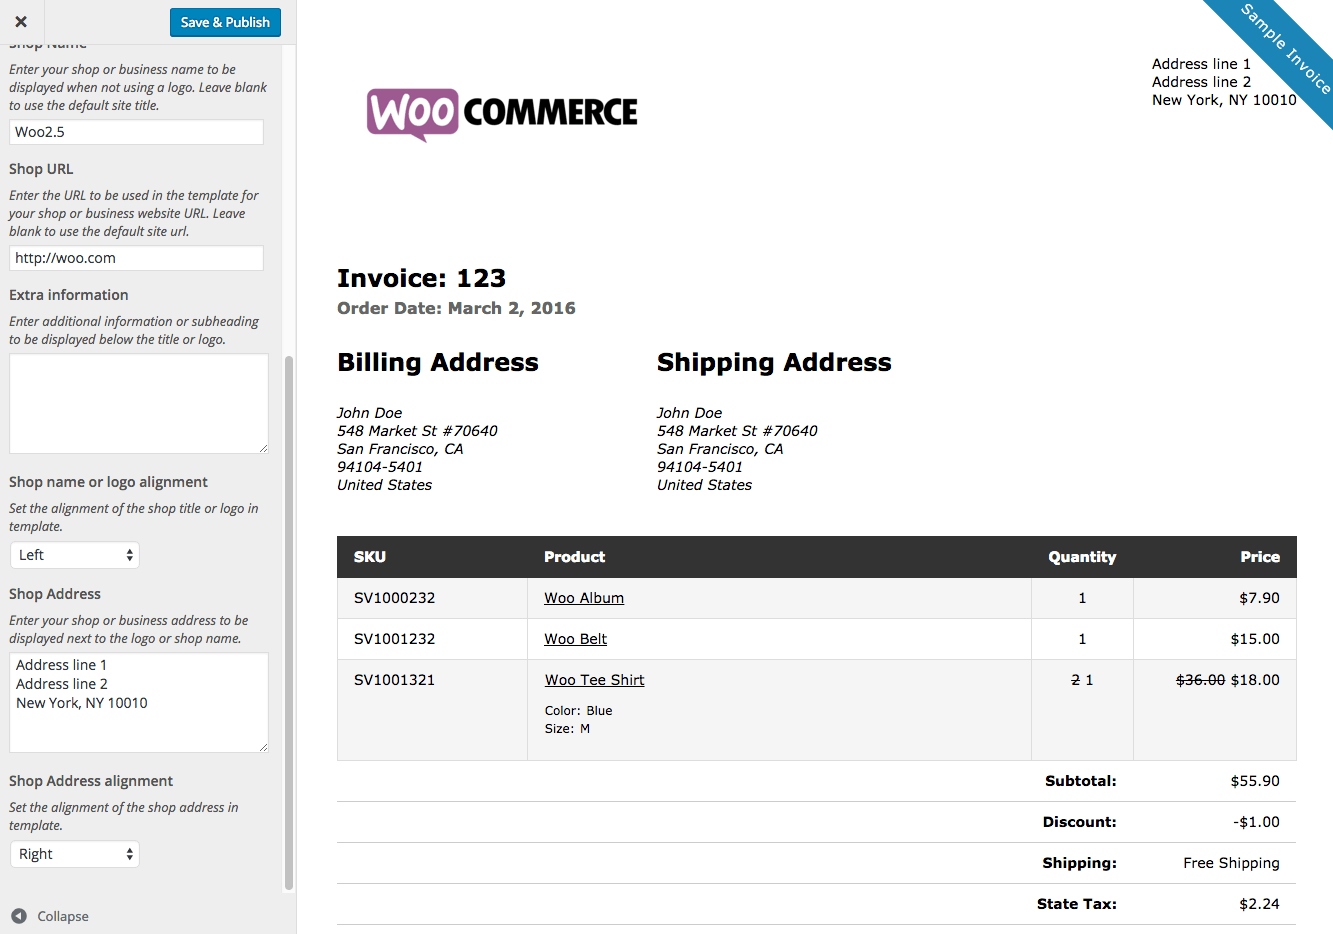 Modaoxus  Sweet Woocommerce Print Invoices Amp Packing Lists  Woocommerce Docs With Goodlooking Woocommerce Print Invoices  Packing Lists Customizer With Amusing Invoice Scanner Also Free Excel Invoice Template In Addition Making An Invoice And Invoice Books As Well As Word Template Invoice Additionally Salesforce Invoice From Docswoocommercecom With Modaoxus  Goodlooking Woocommerce Print Invoices Amp Packing Lists  Woocommerce Docs With Amusing Woocommerce Print Invoices  Packing Lists Customizer And Sweet Invoice Scanner Also Free Excel Invoice Template In Addition Making An Invoice From Docswoocommercecom